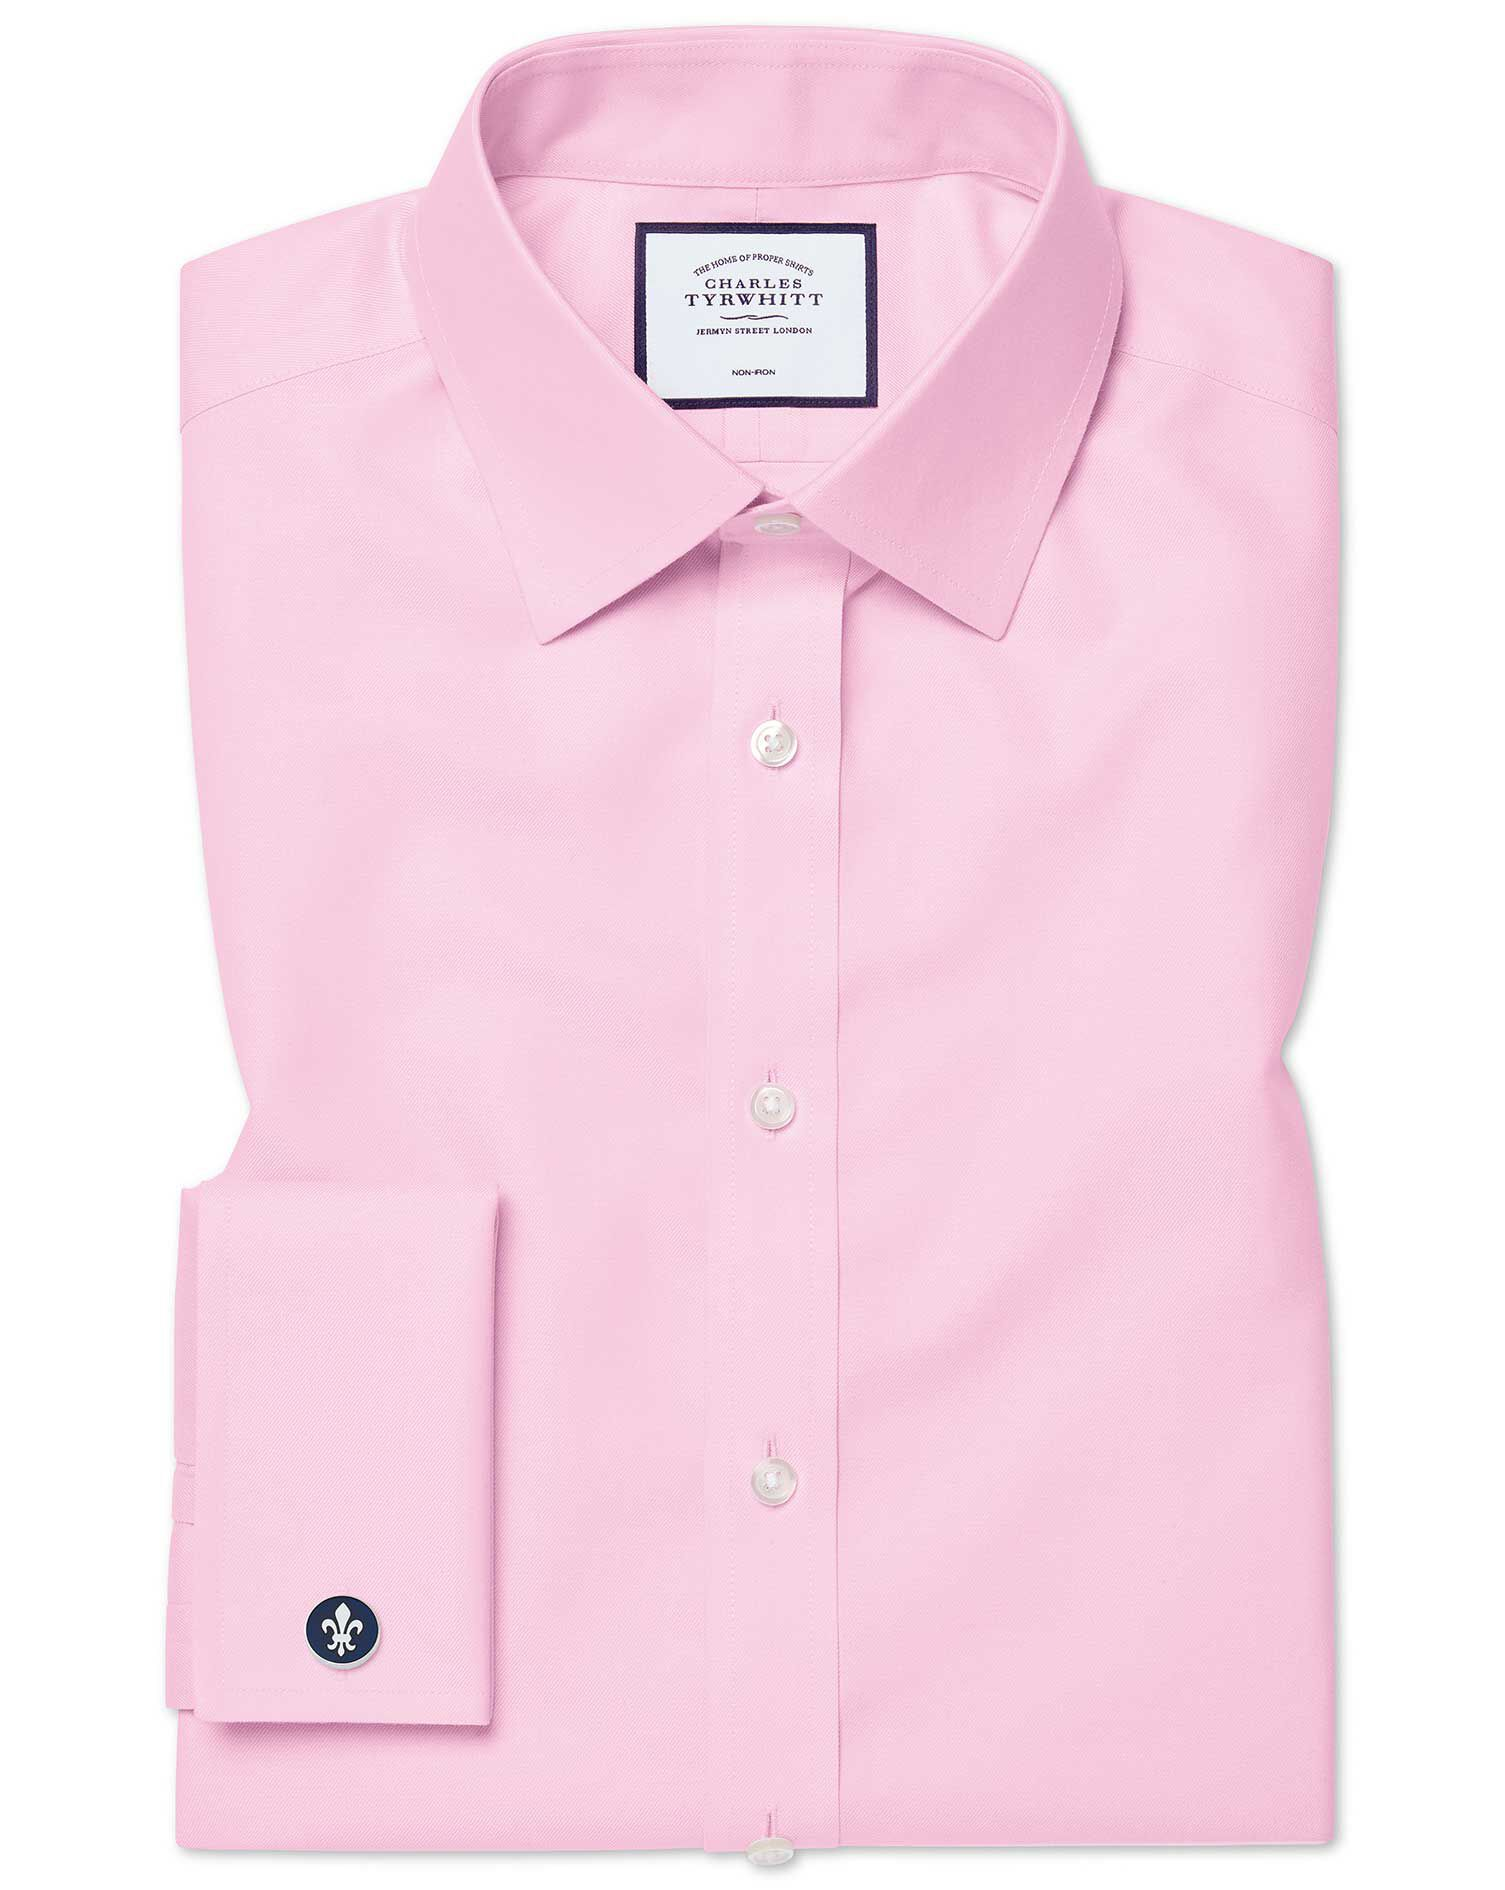 Classic Fit Non-Iron Twill Pink Cotton Formal Shirt Double Cuff Size 16/34 by Charles Tyrwhitt